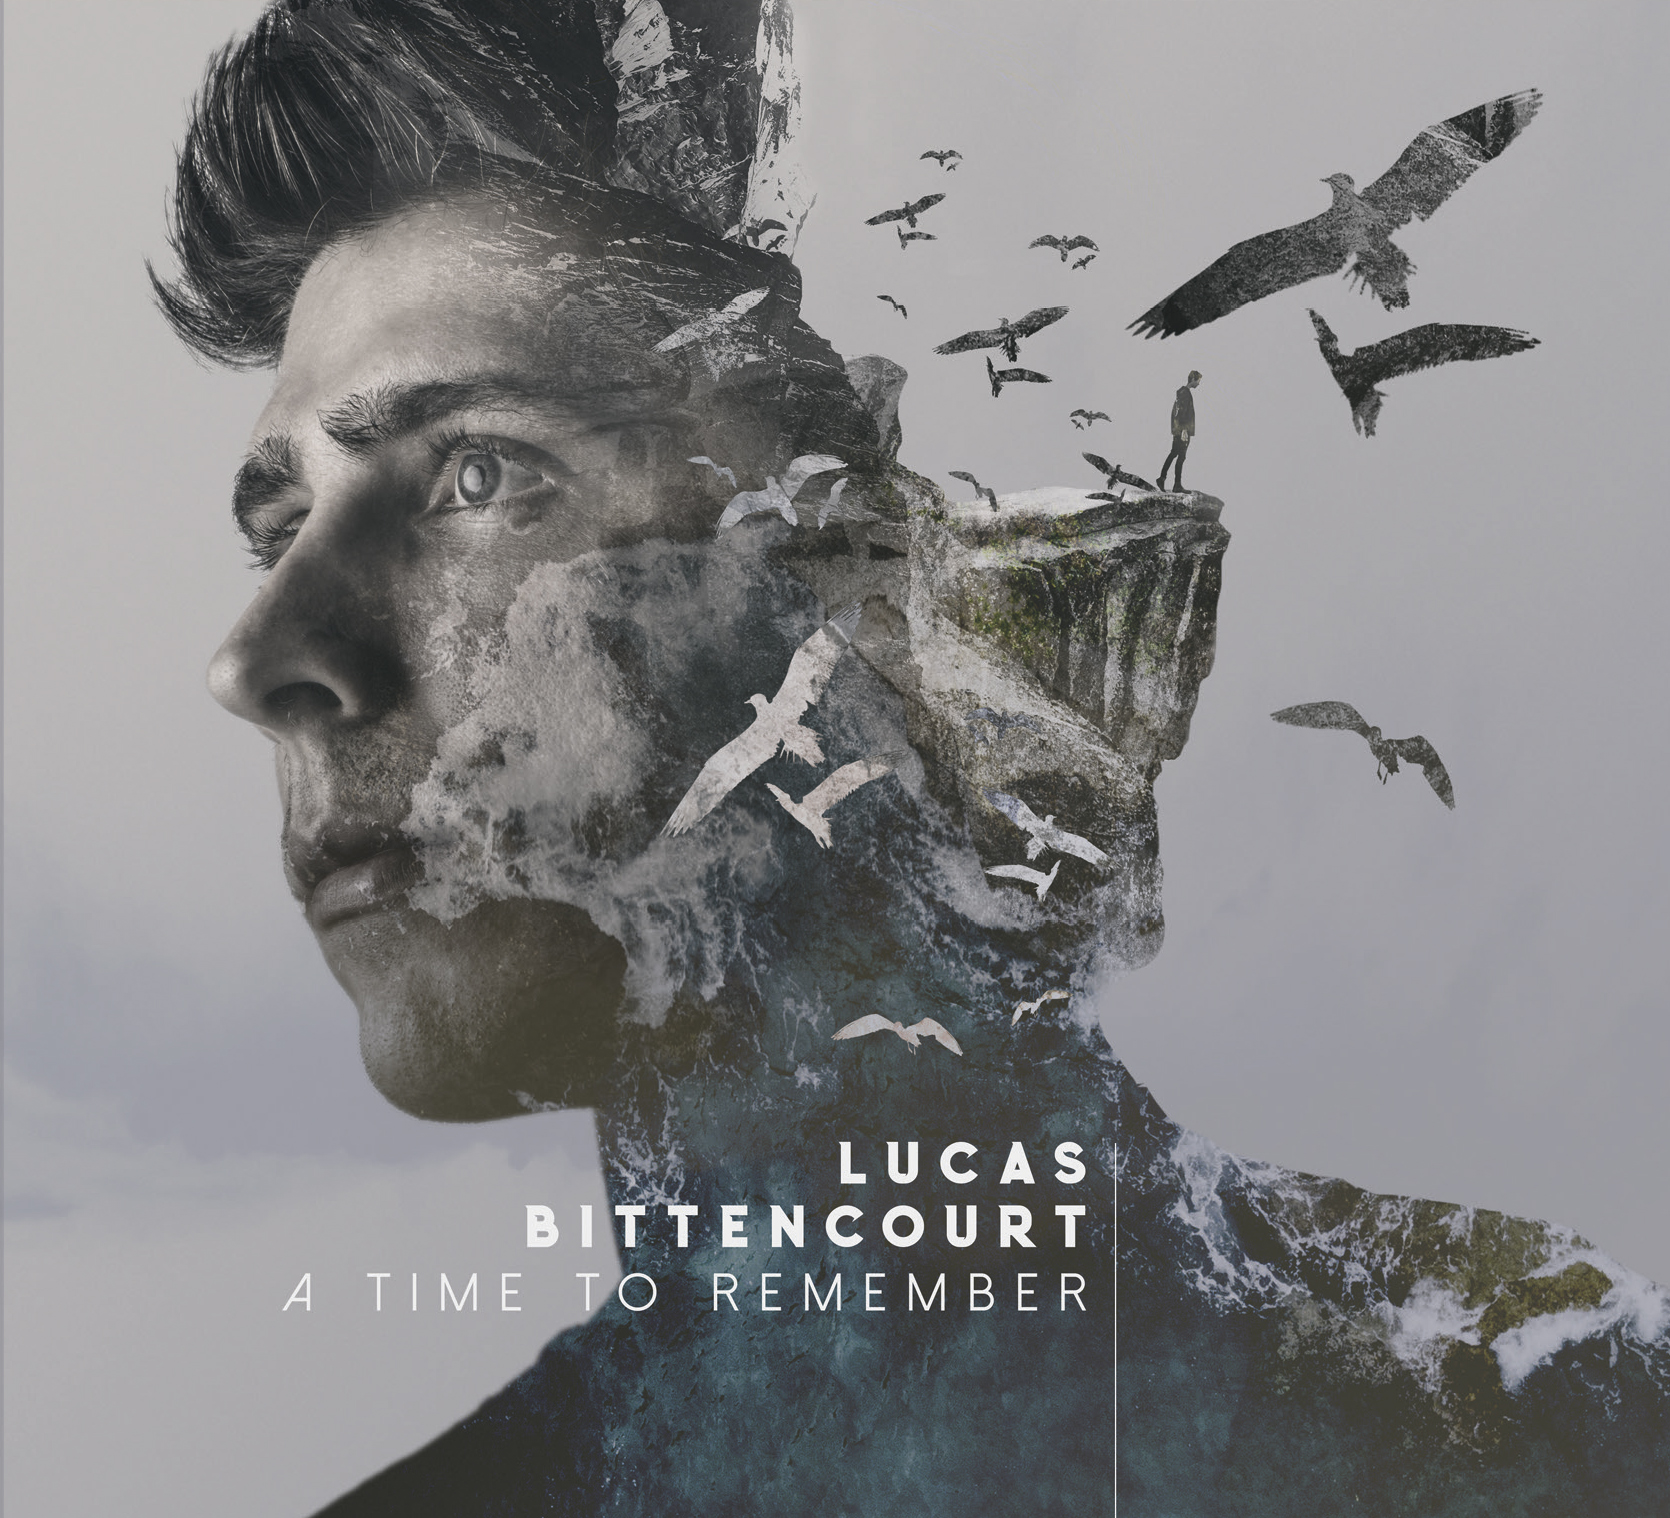 Lucas Bittencourt - A time to Remember